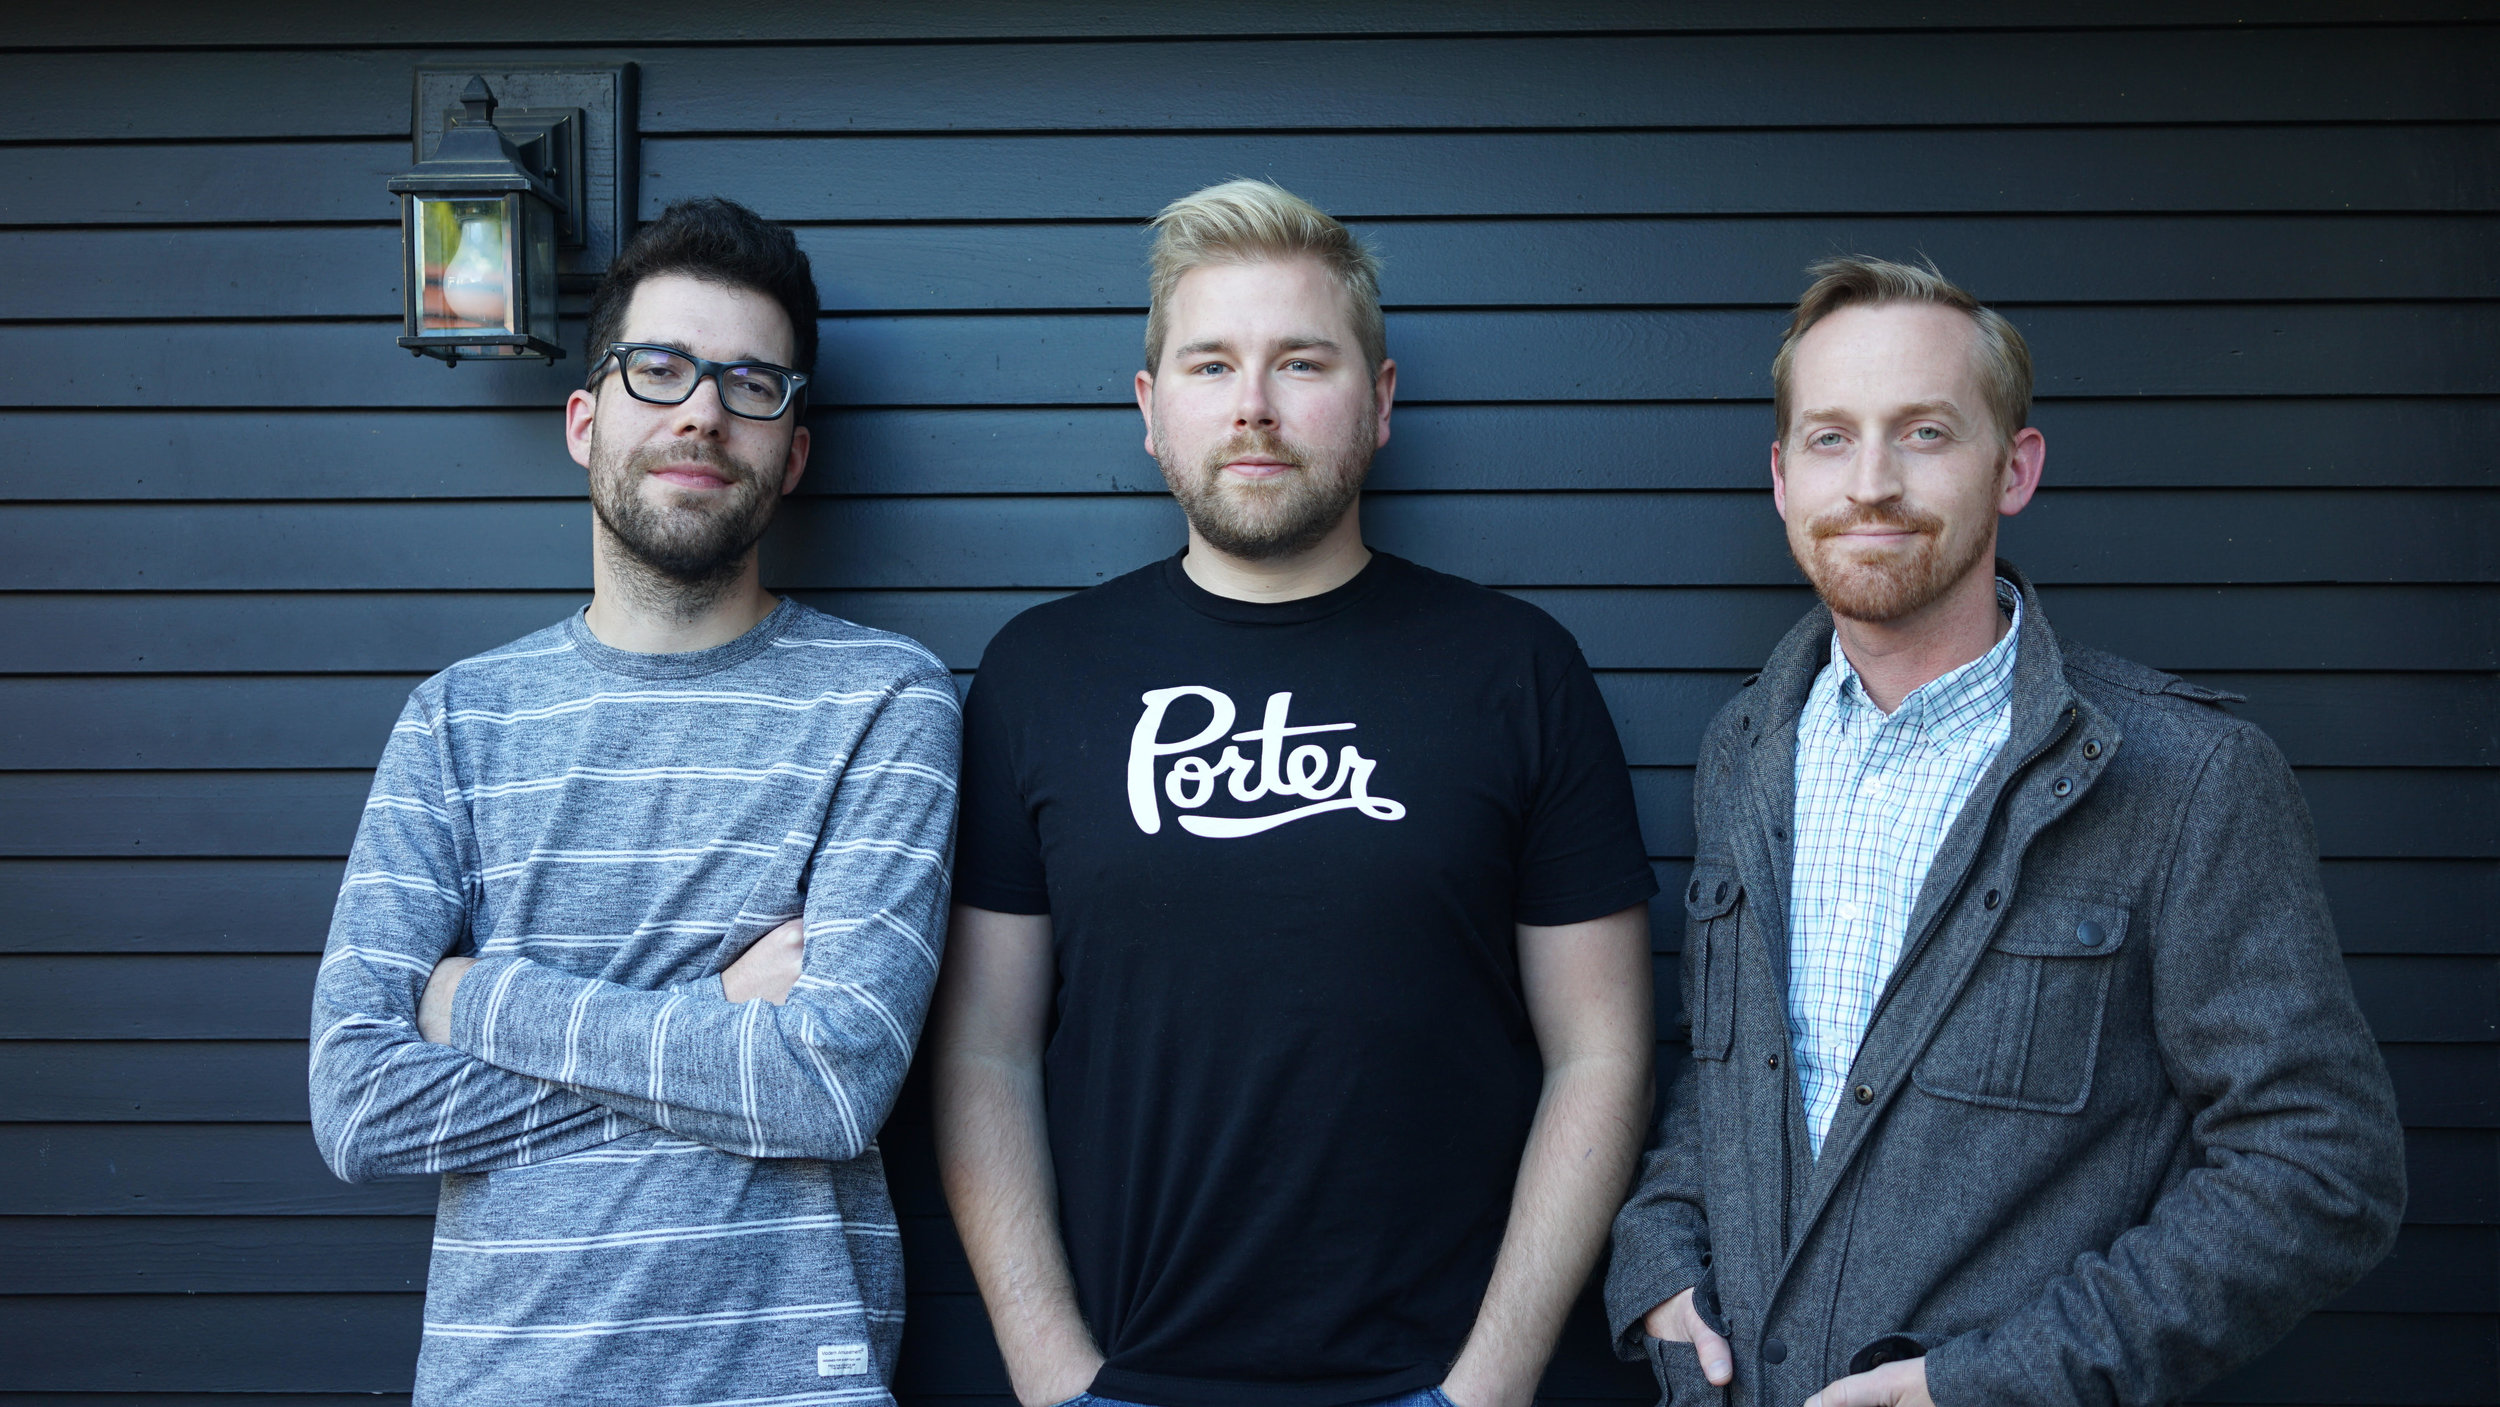 (Left to right) Henry J., Tyler C. and Garret H.